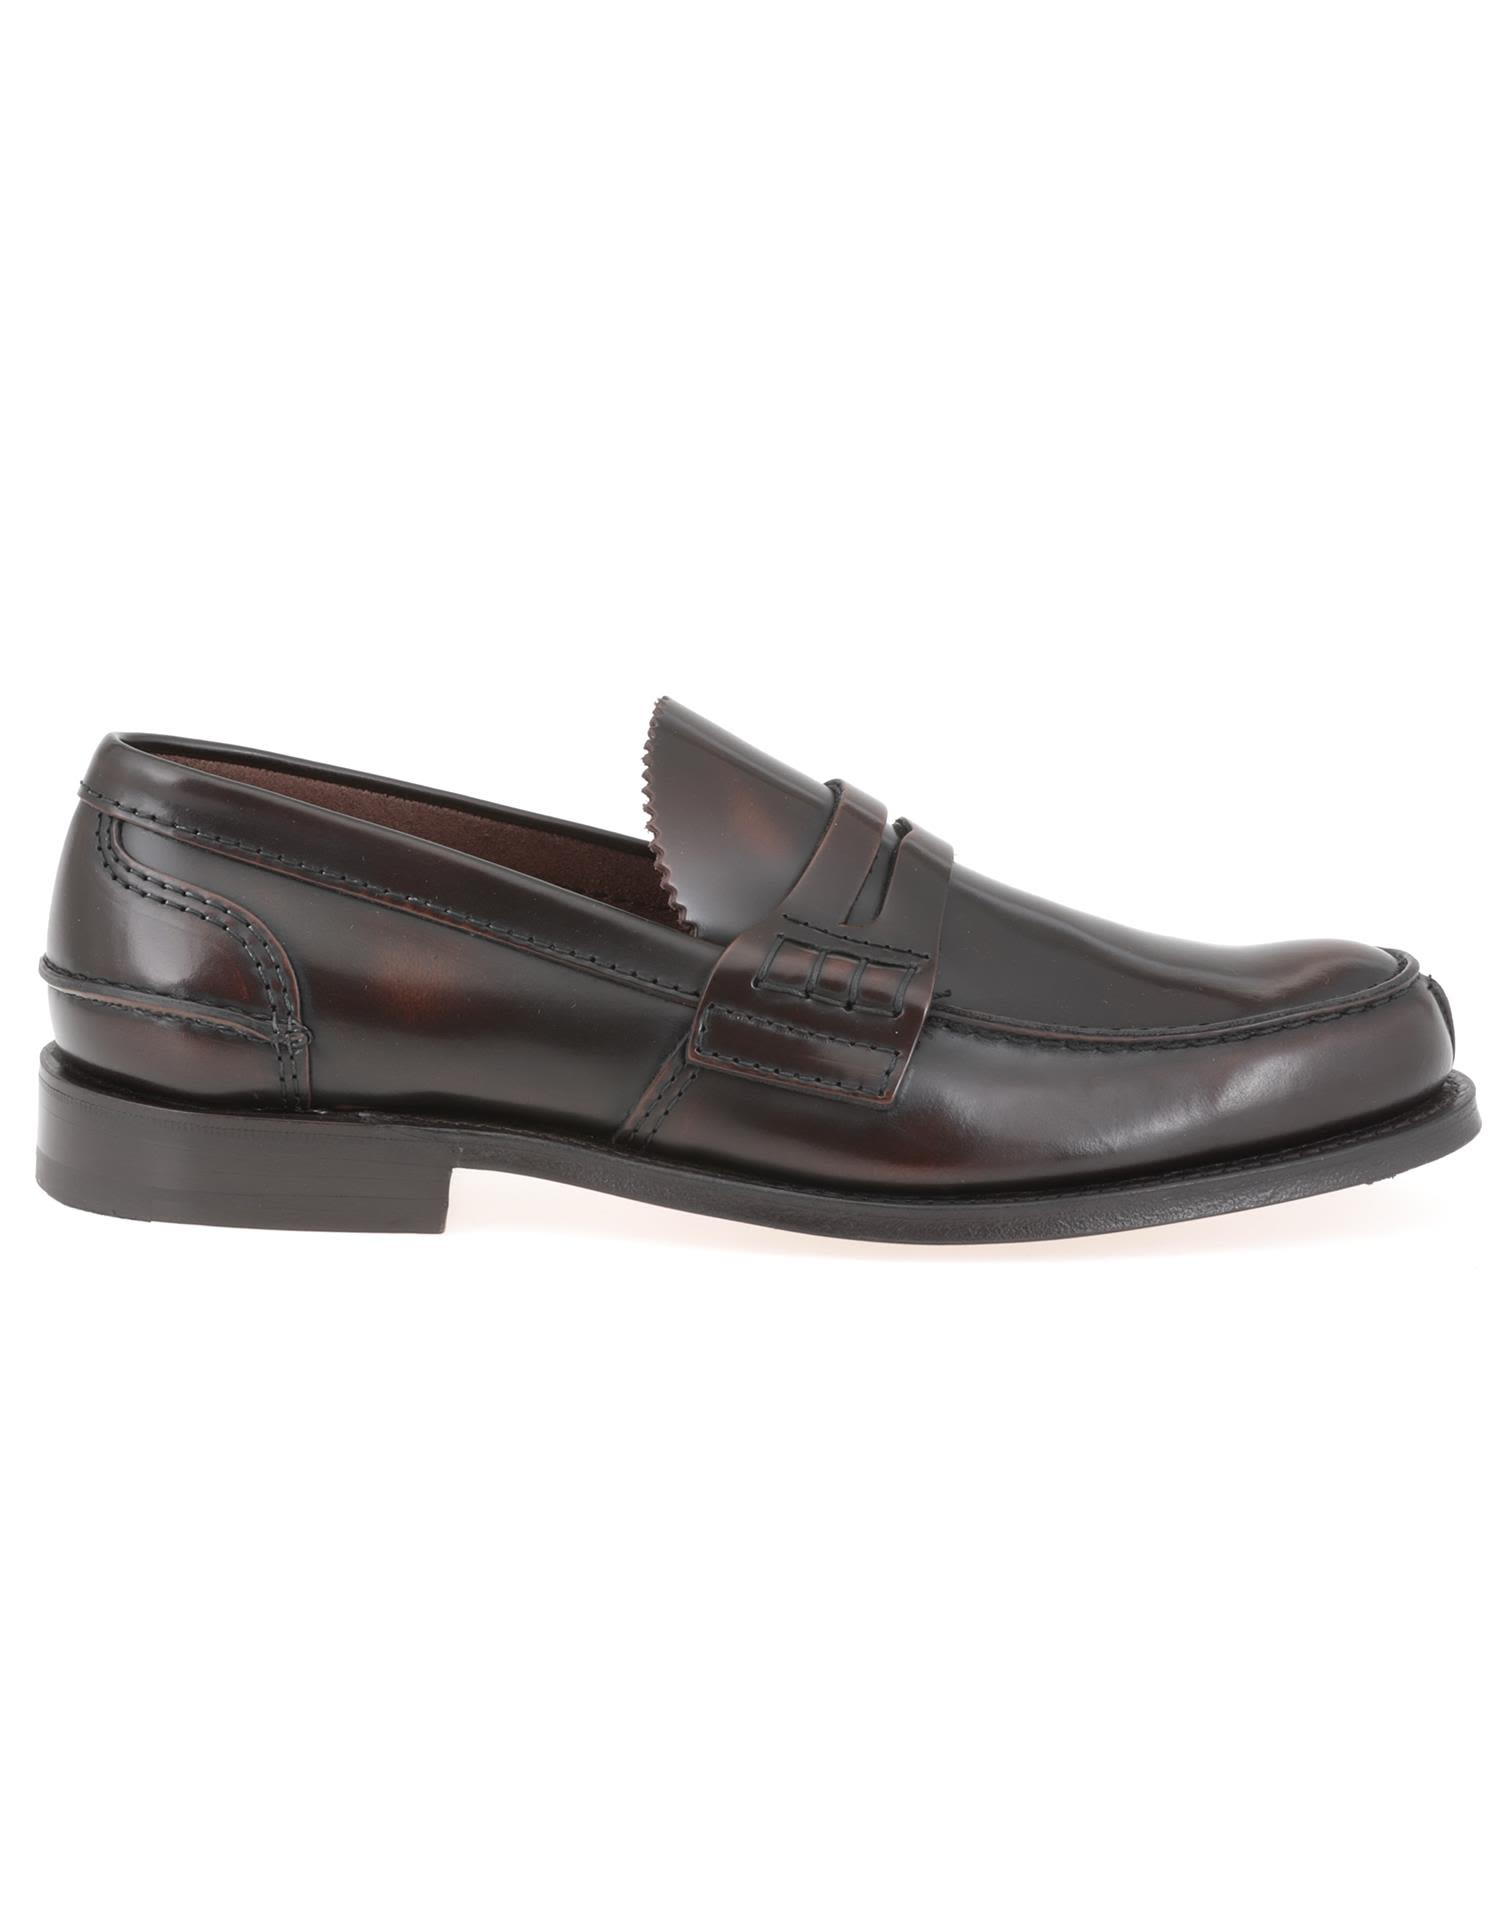 Churchs Tunbridge Loafer